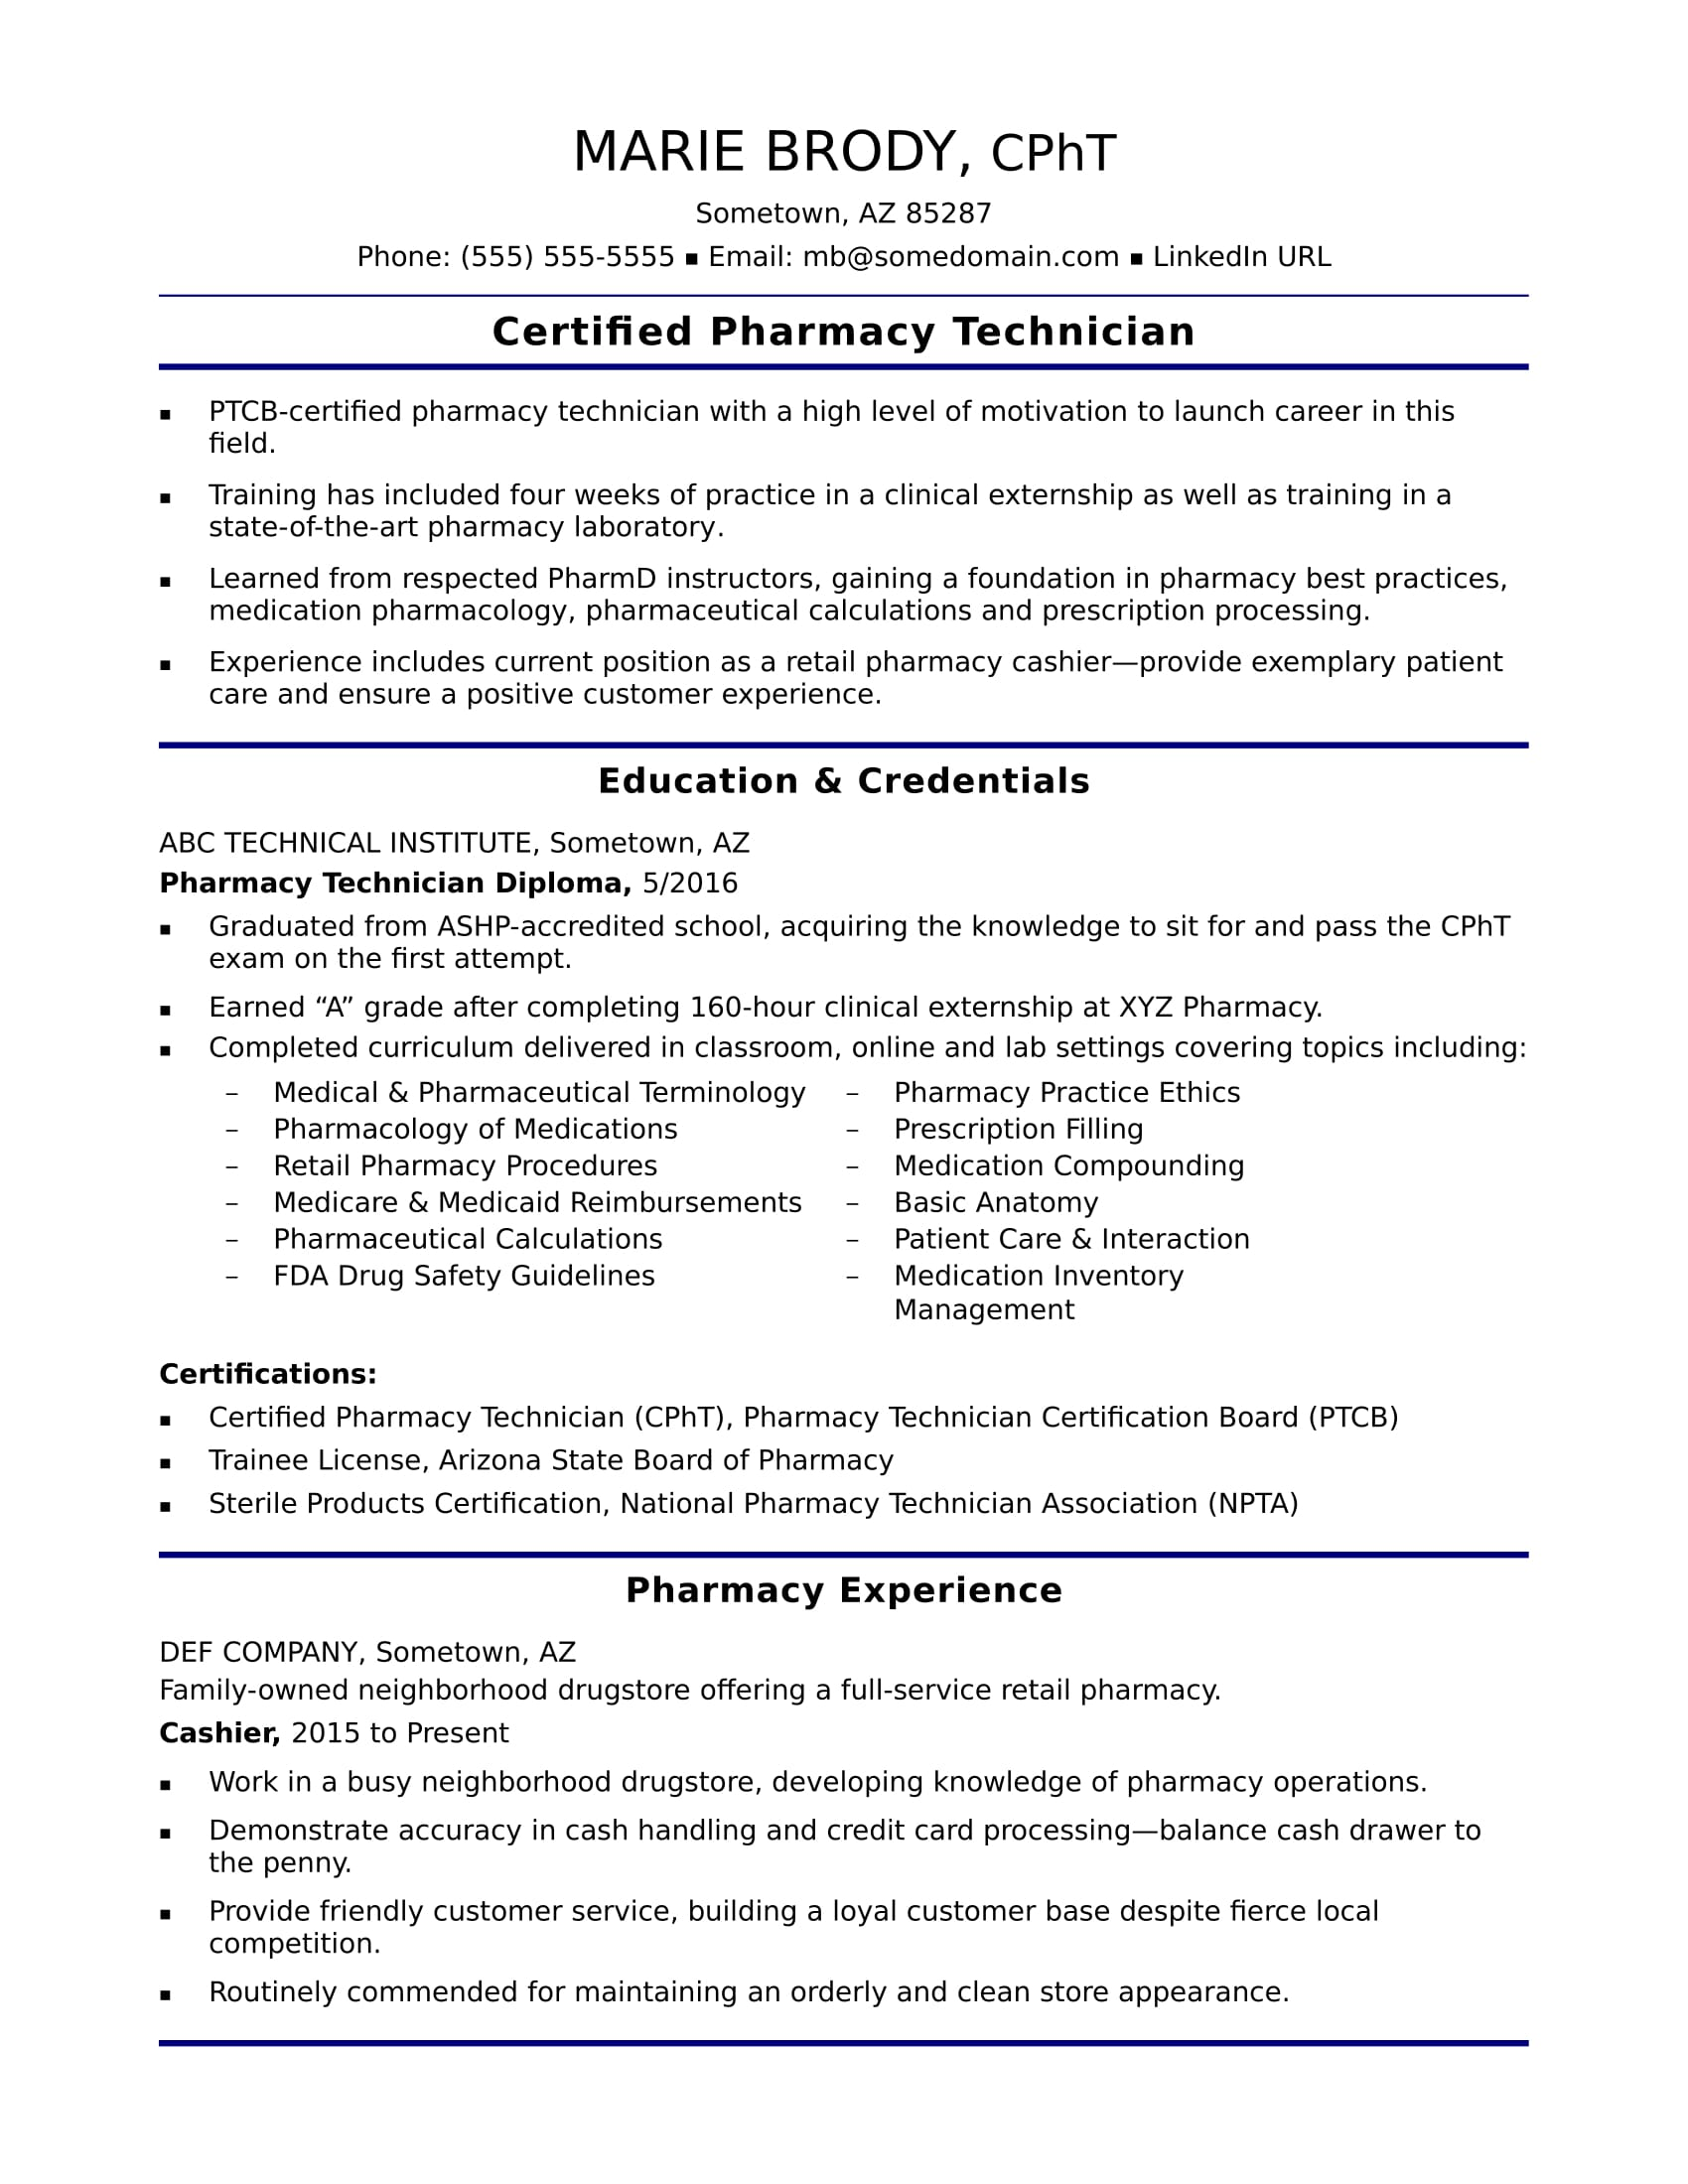 resume Certification On Resume entry level pharmacy technician resume sample monster com for an technician